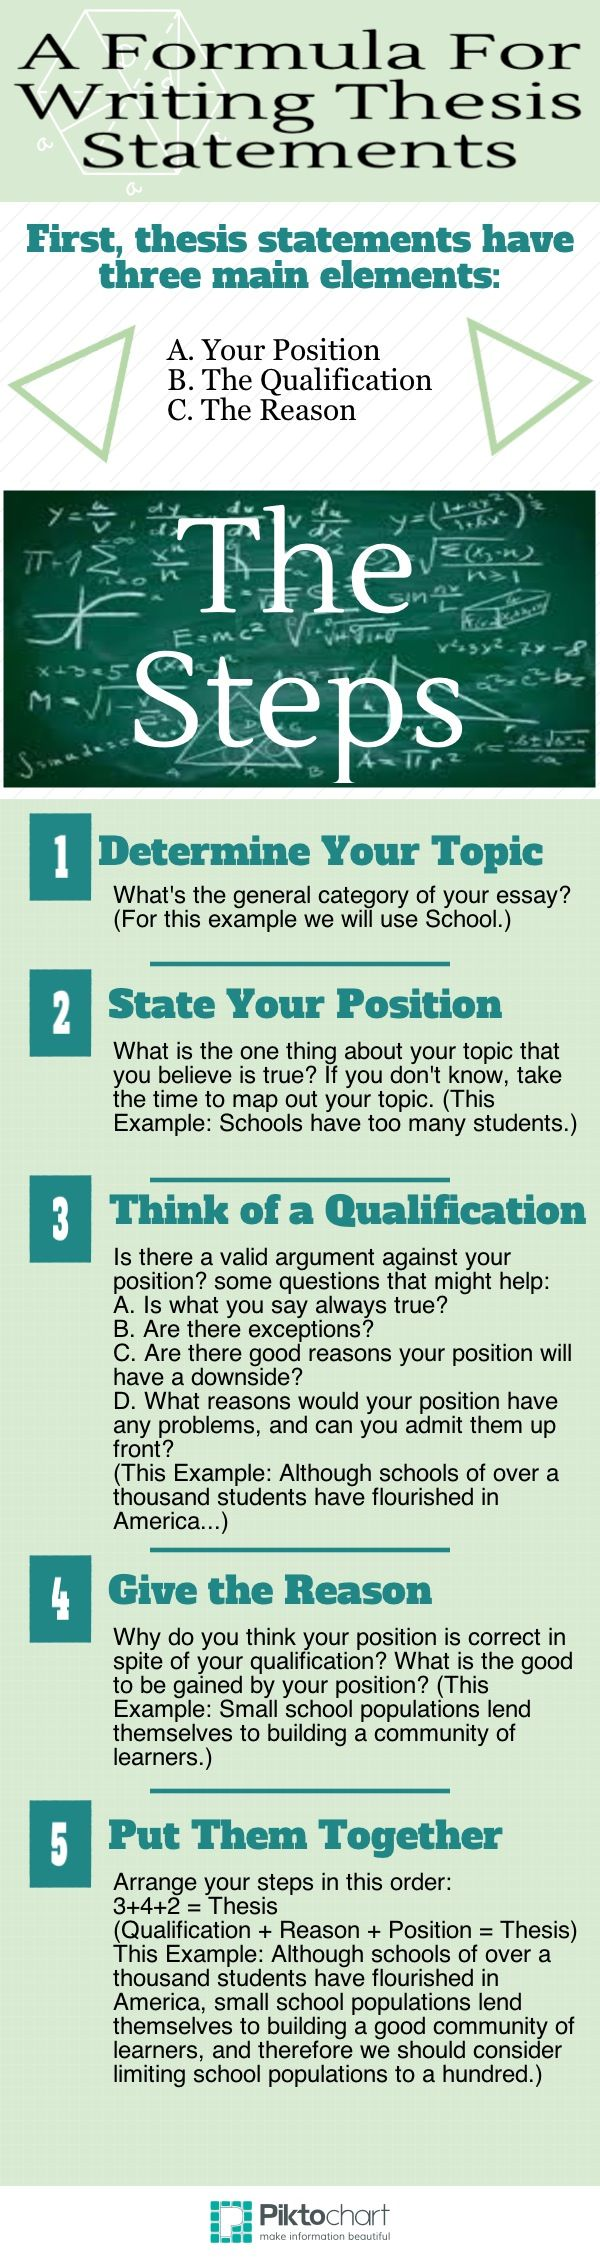 Science Topics For Essays Thesis Statements  Piktochart Infographic Compare And Contrast Essay About High School And College also Harvard Business School Essay Best  Thesis Writing Ideas On Pinterest  Essay Words Creative  Apa Format Essay Example Paper